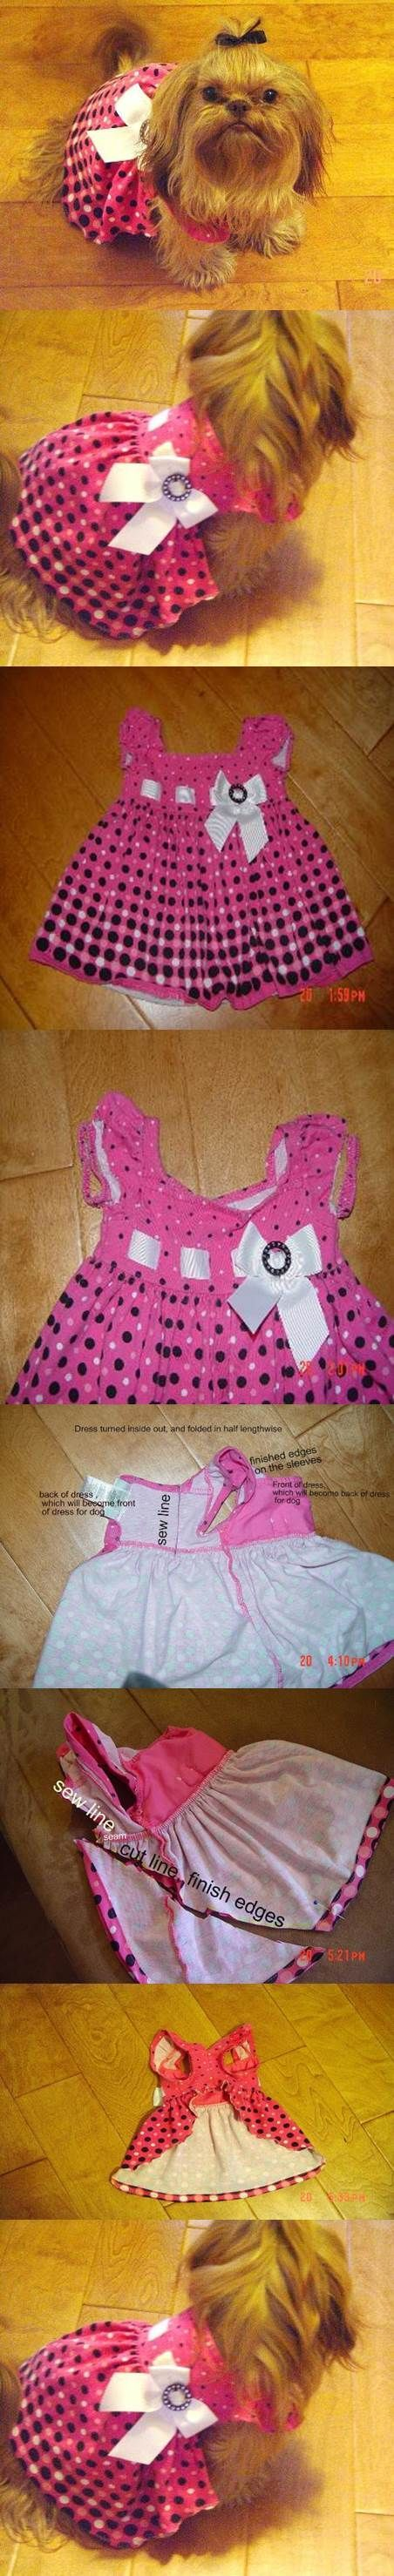 best images about for the dogs on pinterest baby dresses for